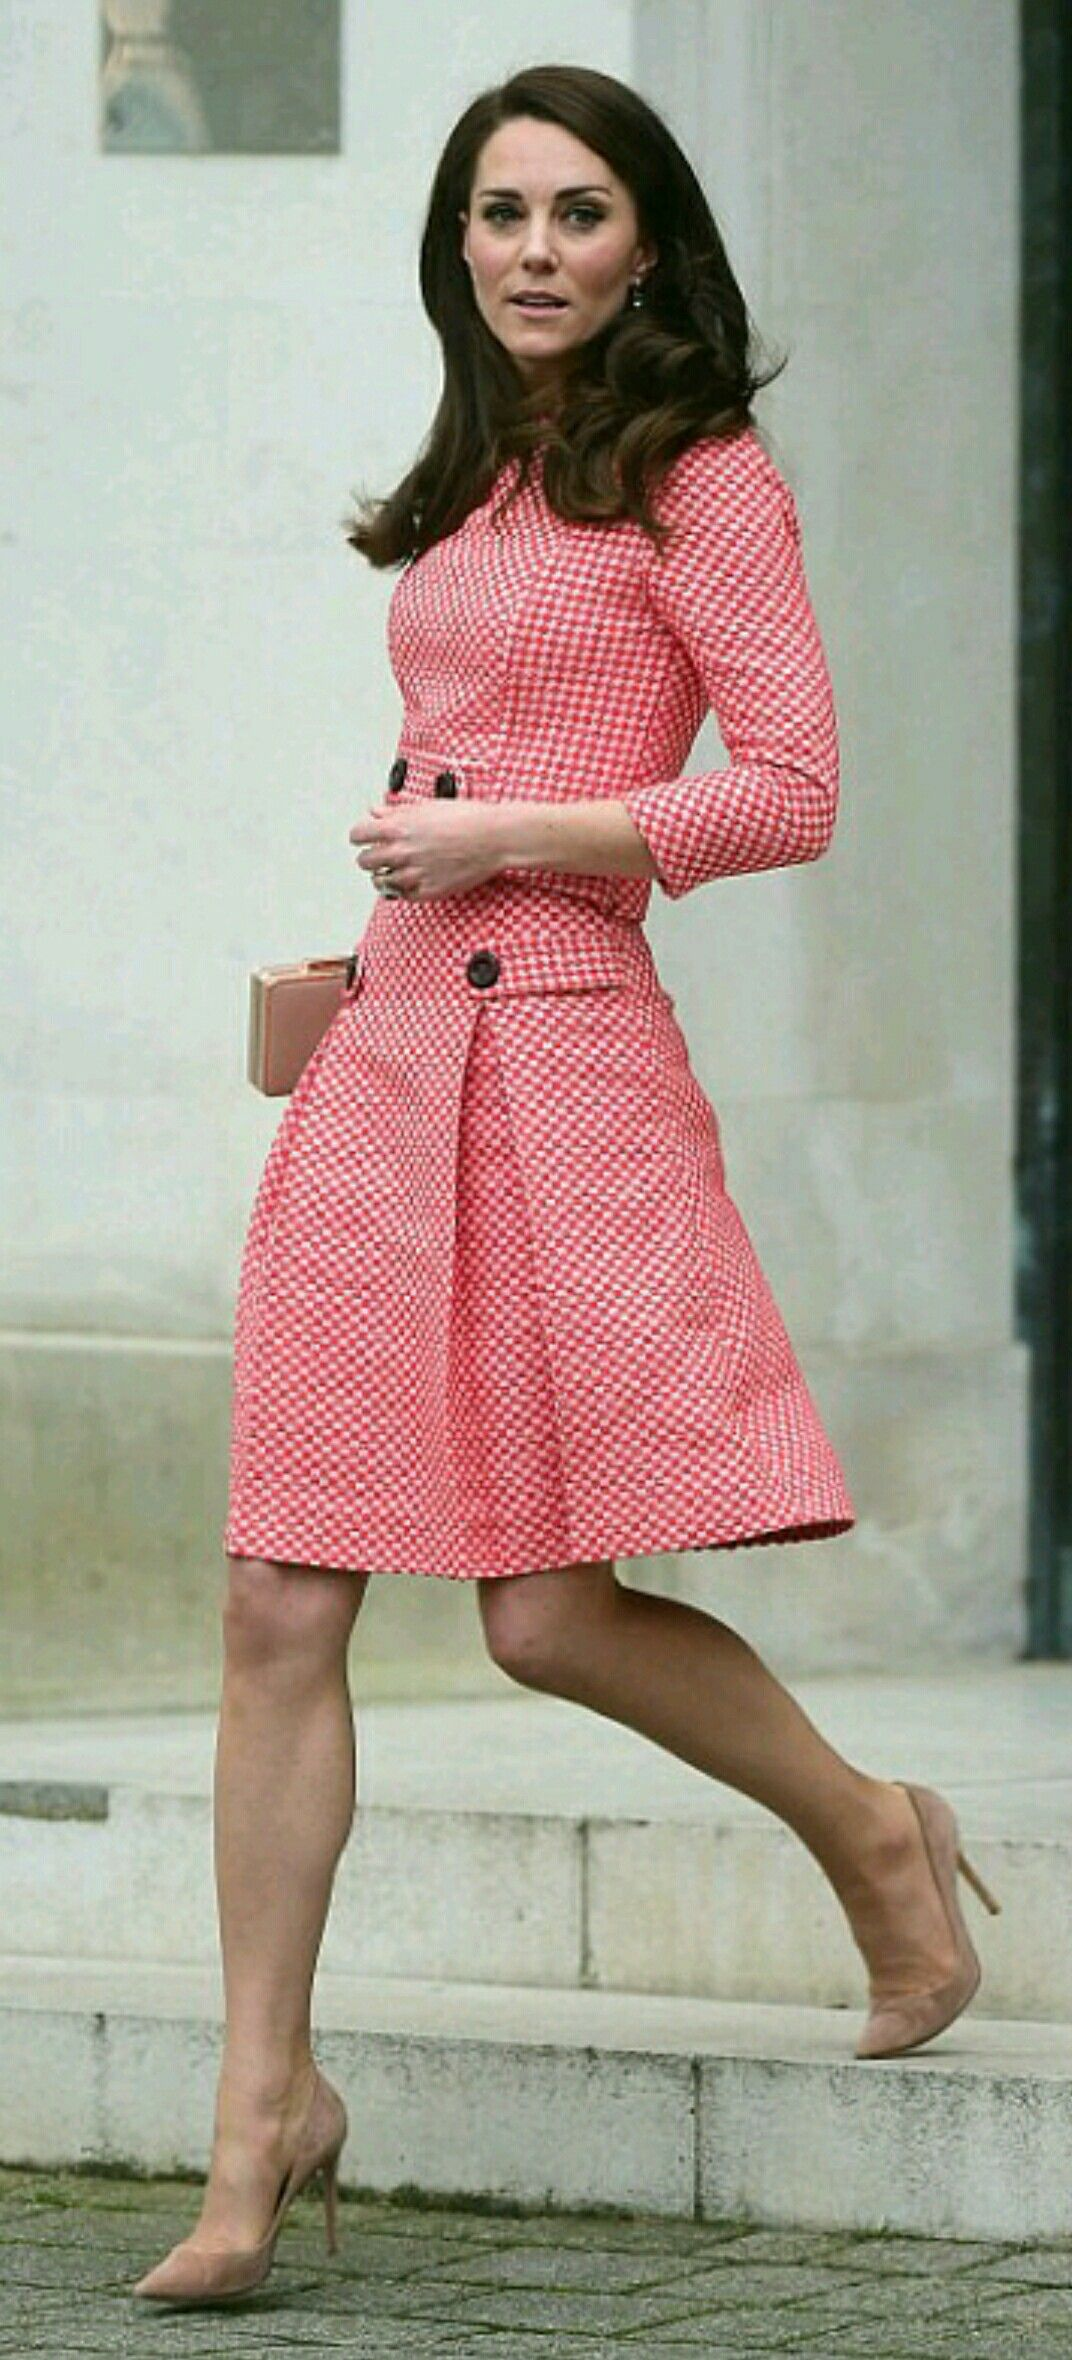 Duchess of Cambridge wearing gingham | My Style | Pinterest ...